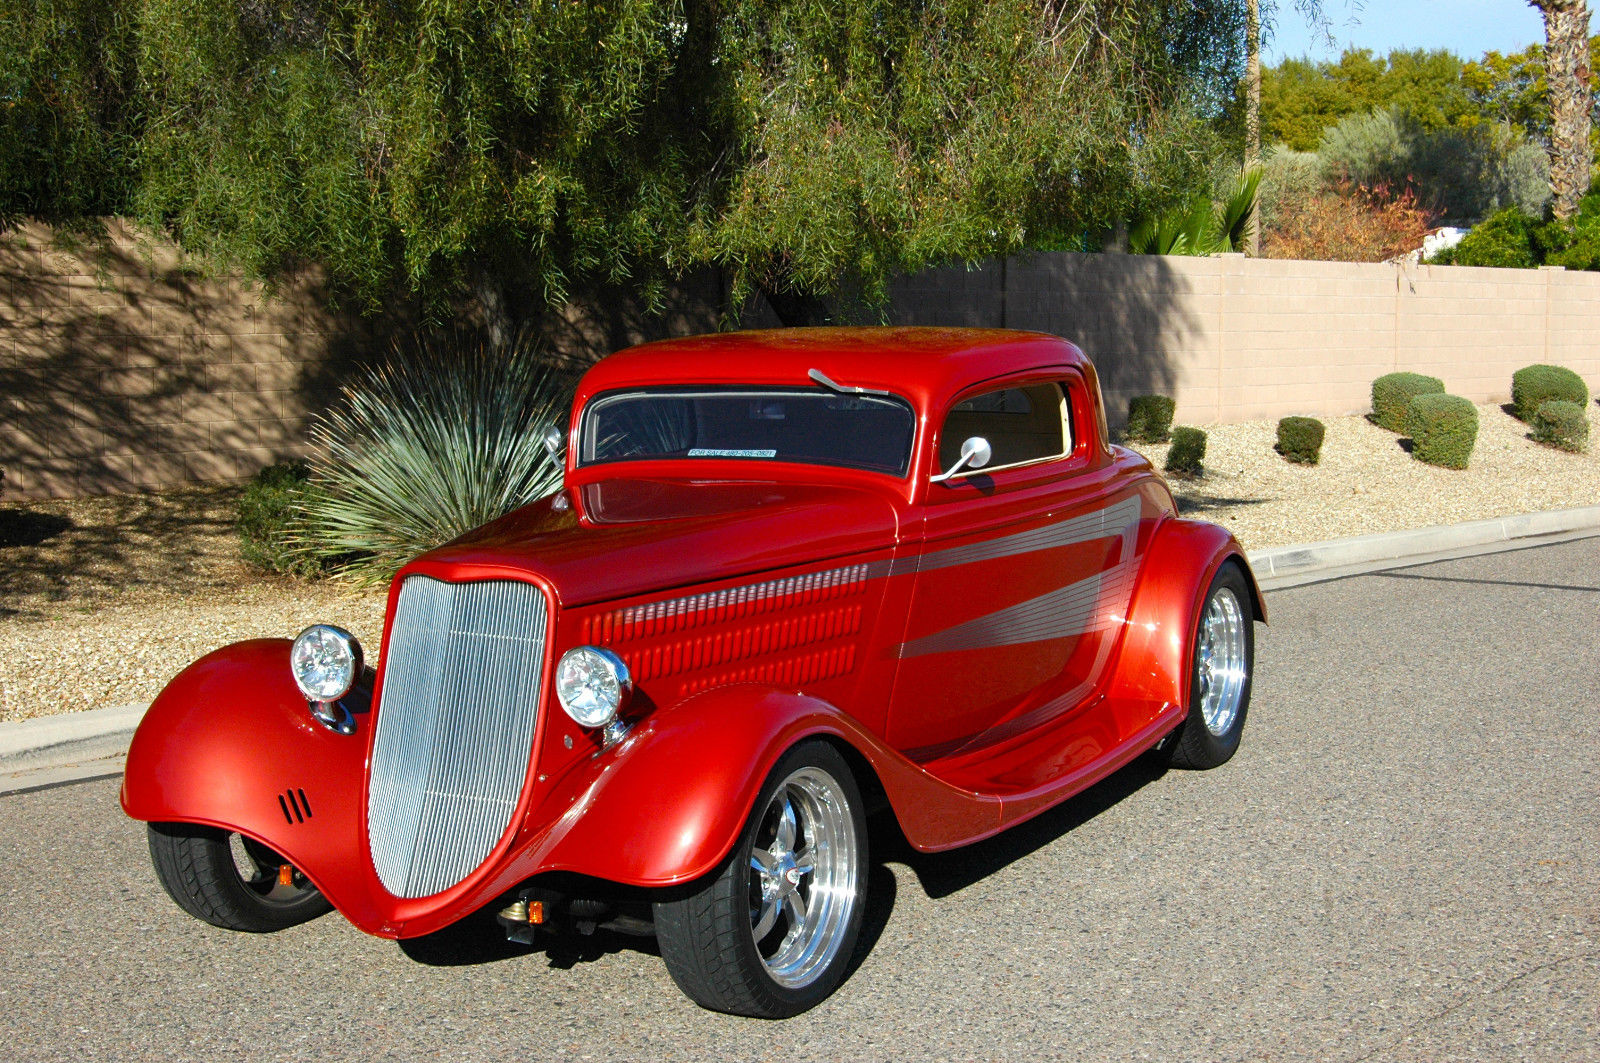 1933 all ford 3 window coupe for sale in phoenix arizona for 1933 3 window coupe for sale